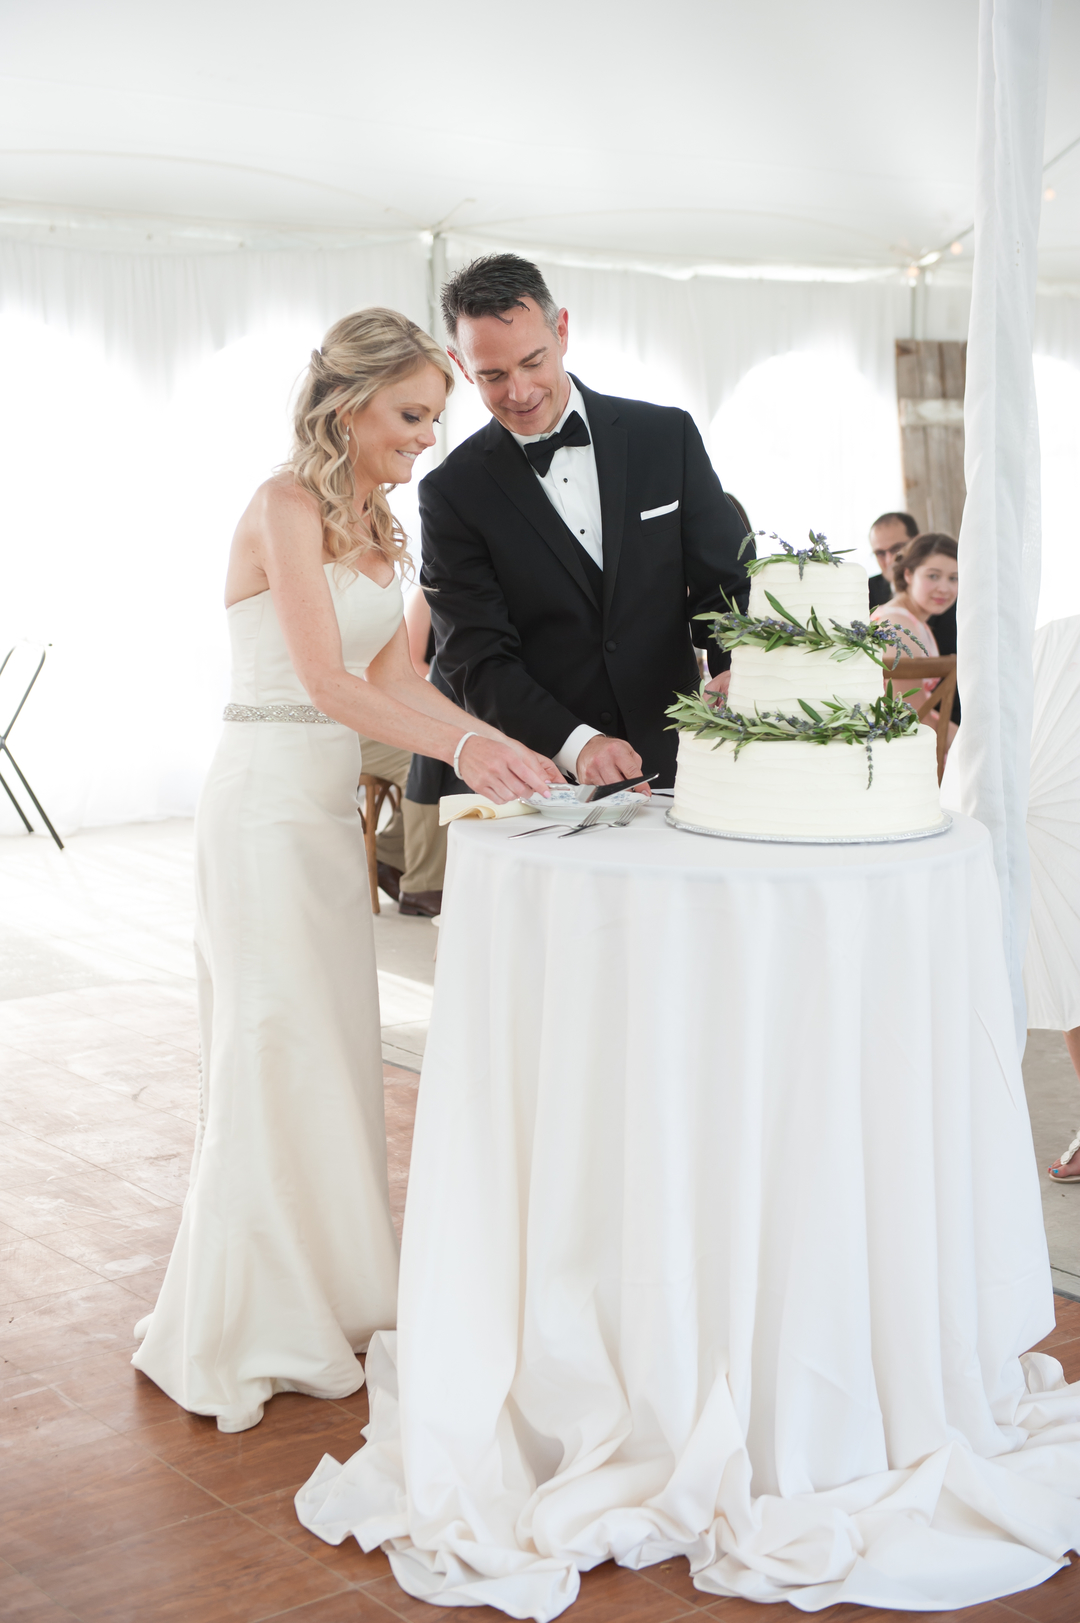 Bride and Groom Cutting the Cake Lavender Cake Chicago Farm Wedding Elite Photo